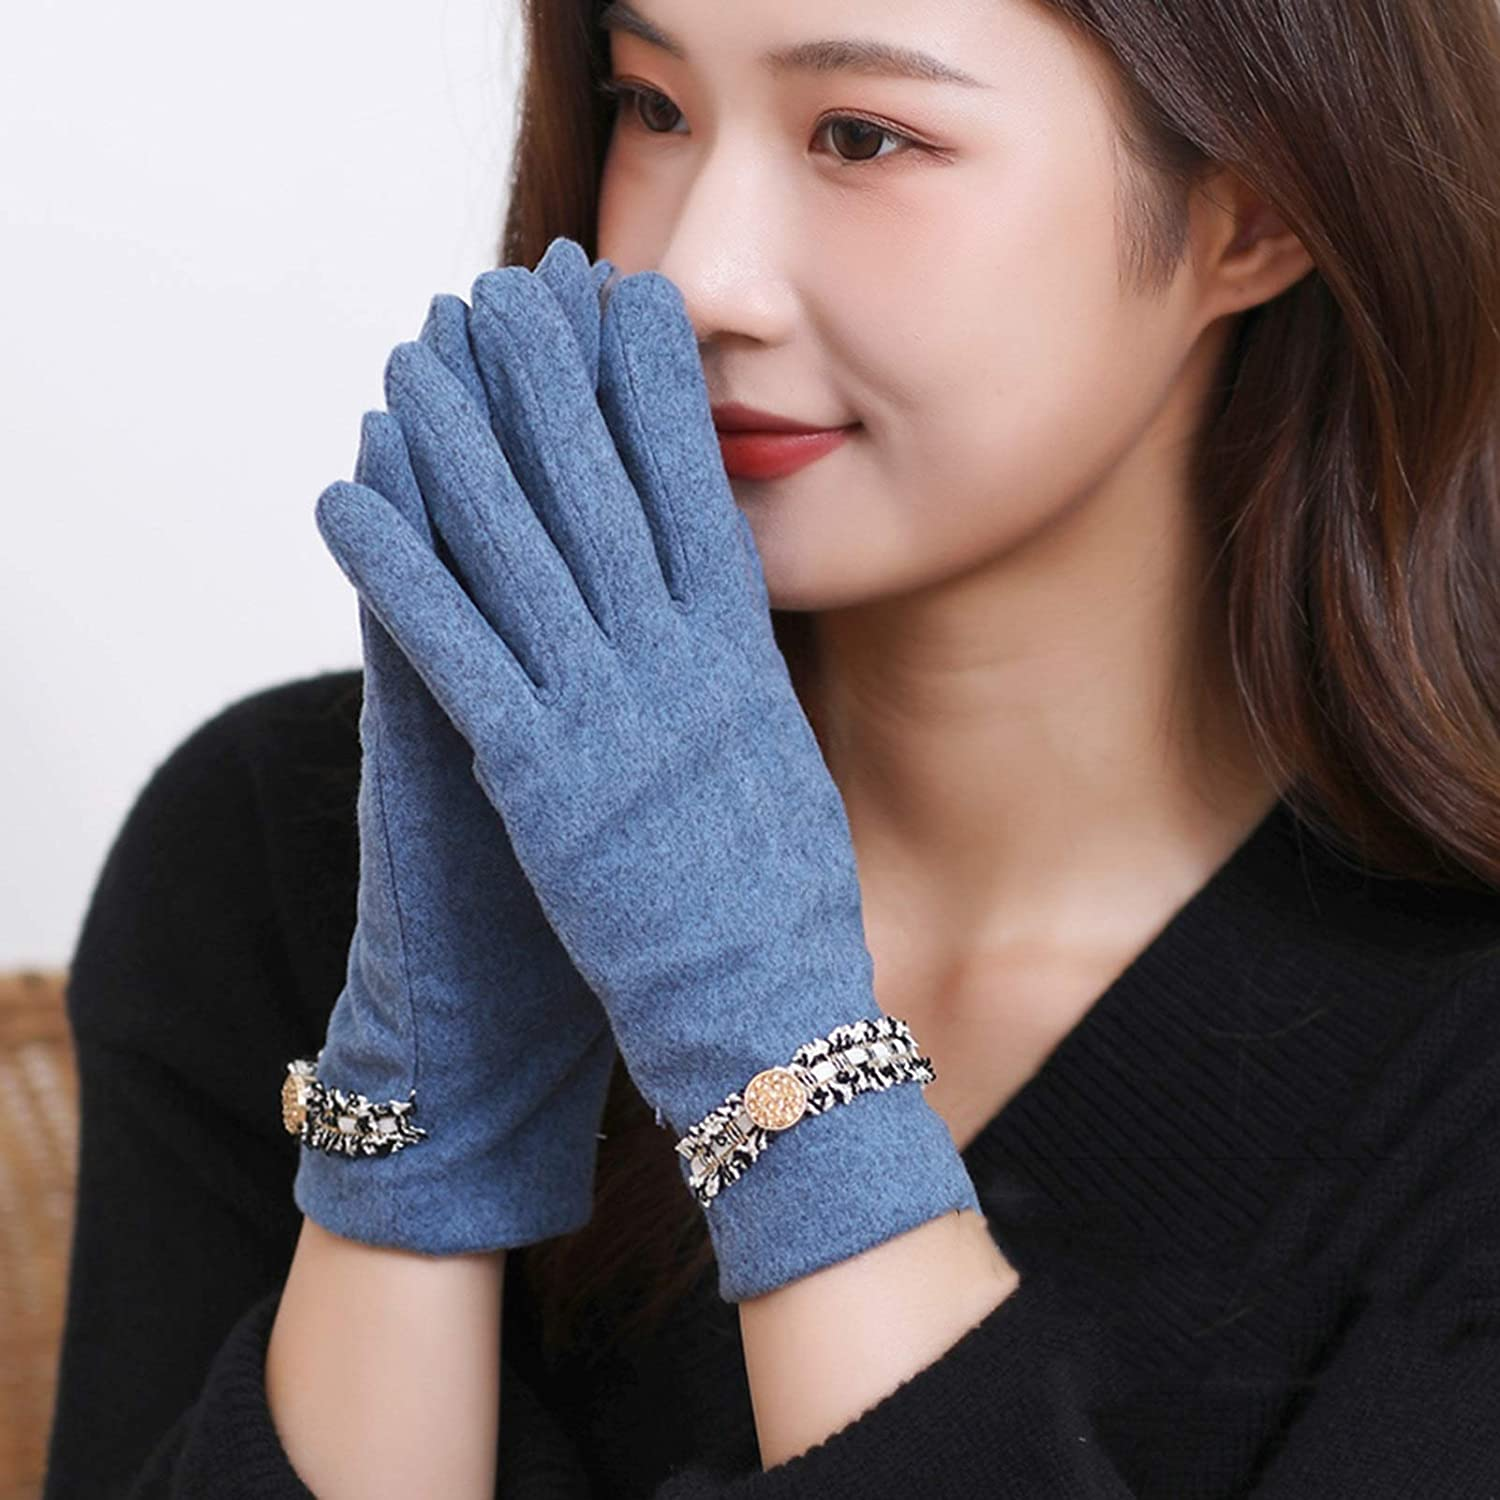 FOLDING Gloves Women's Thin Warm Gloves with Sensitive Touch Screen for Texting Fingers, Windproof Gloves (Color : Blue)